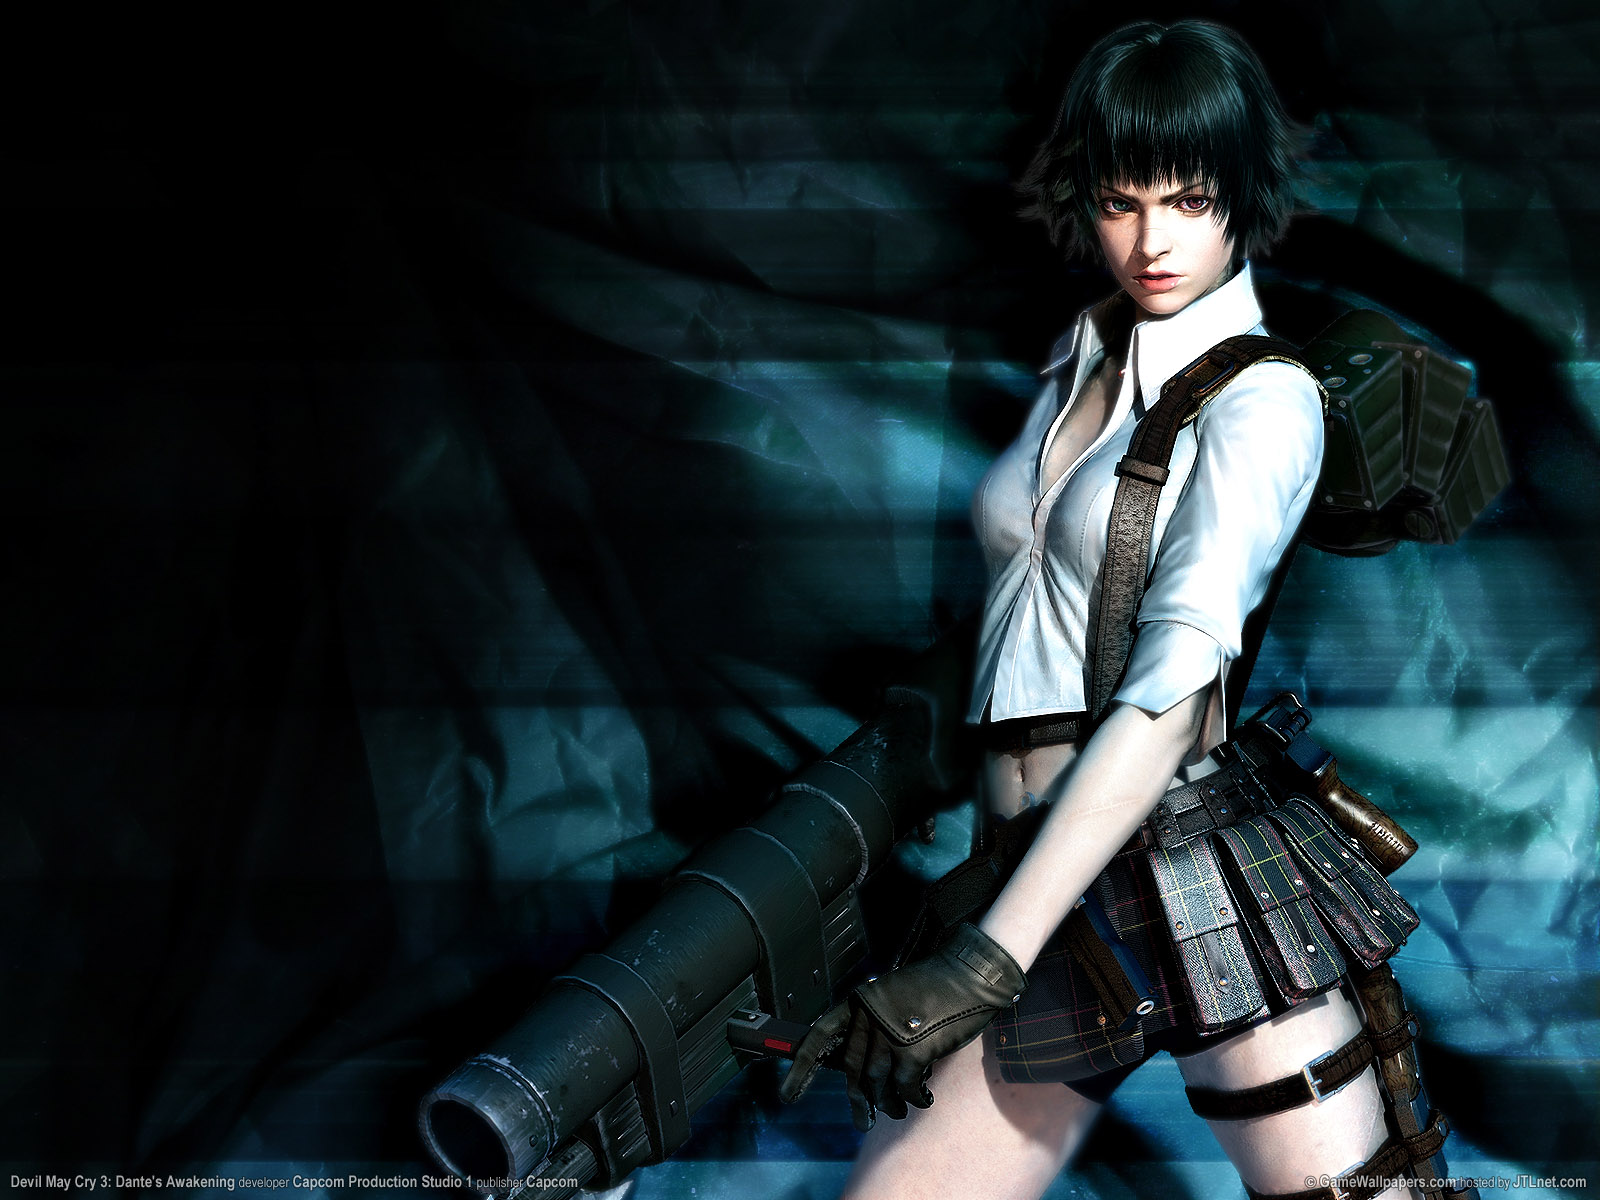 wallpaper_devil_may_cry_3_original.jpg